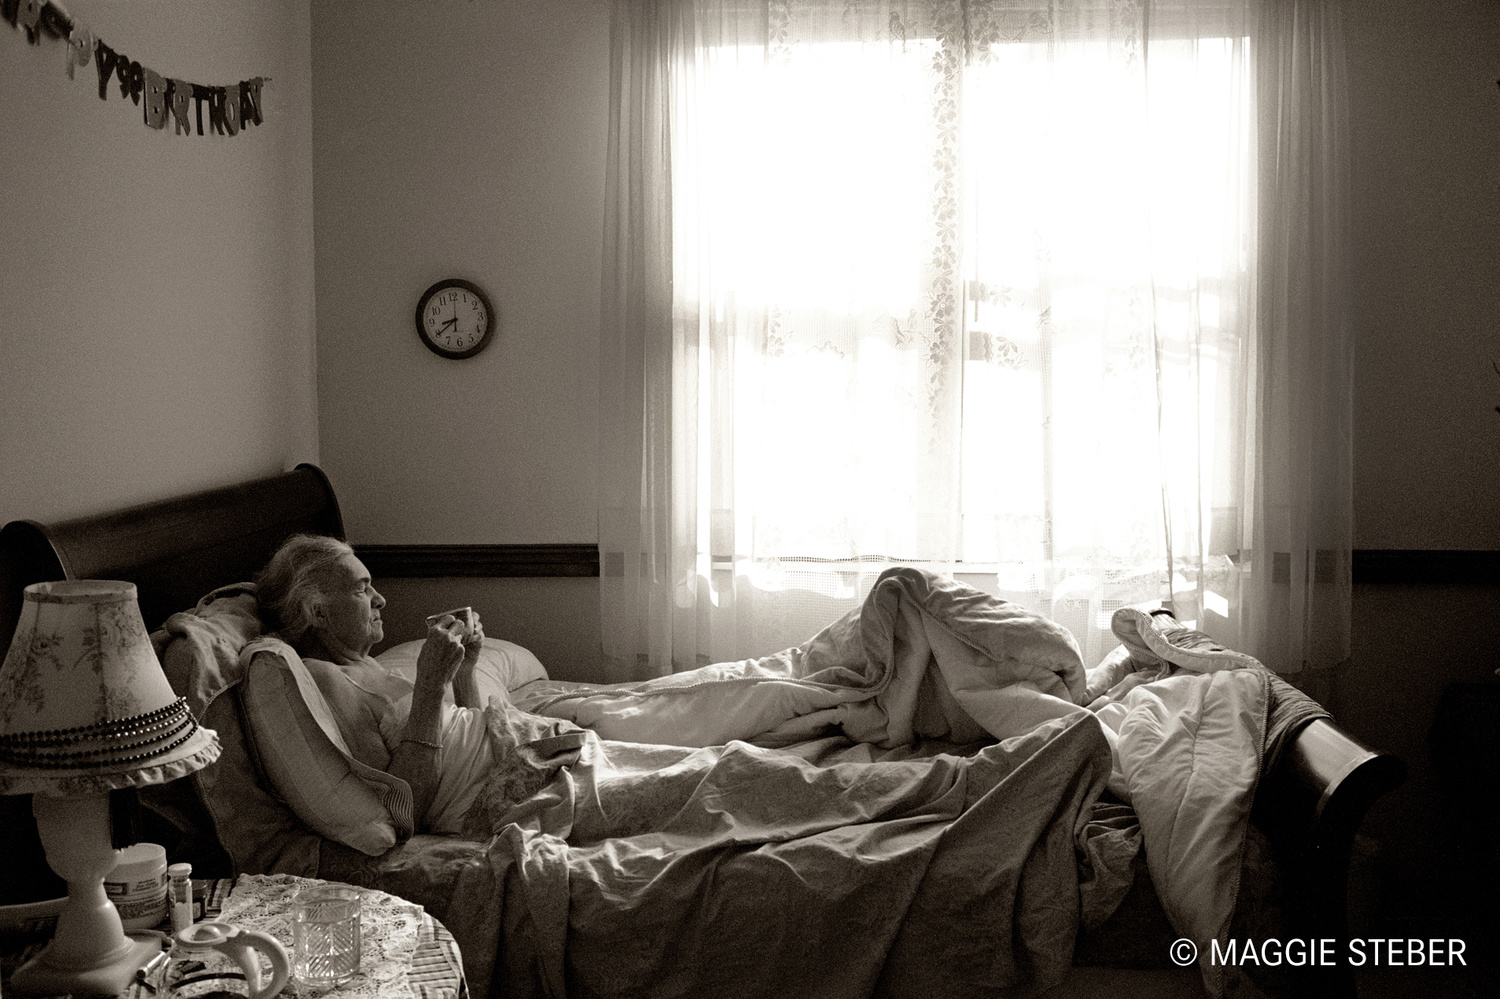 An older woman having a cup of drink in bed.